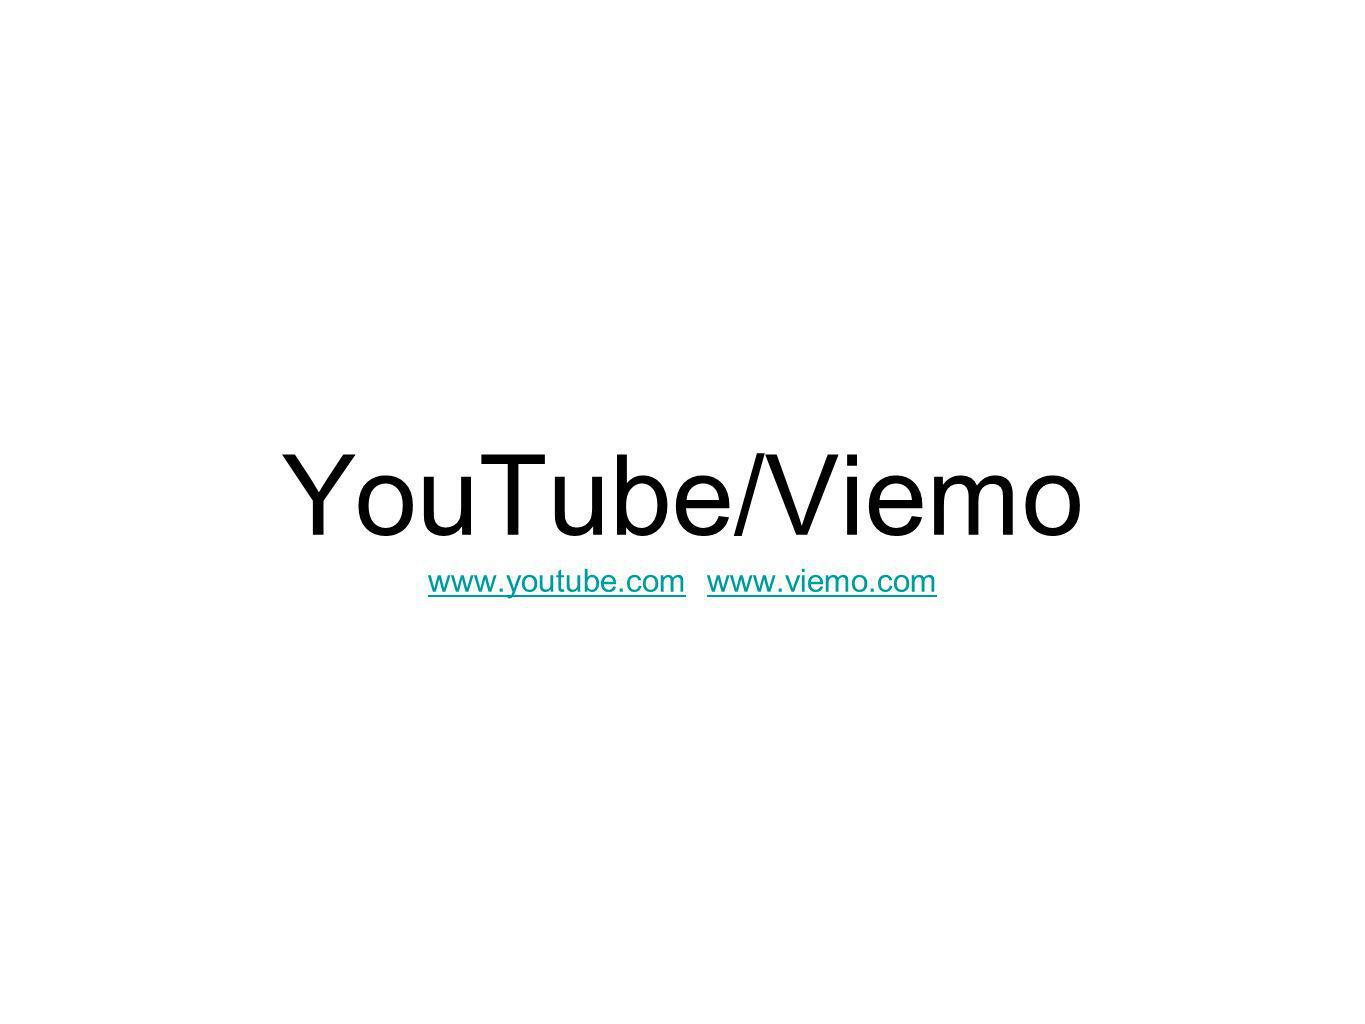 YouTube/Viemo www.youtube.com www.viemo.com www.youtube.comwww.viemo.com